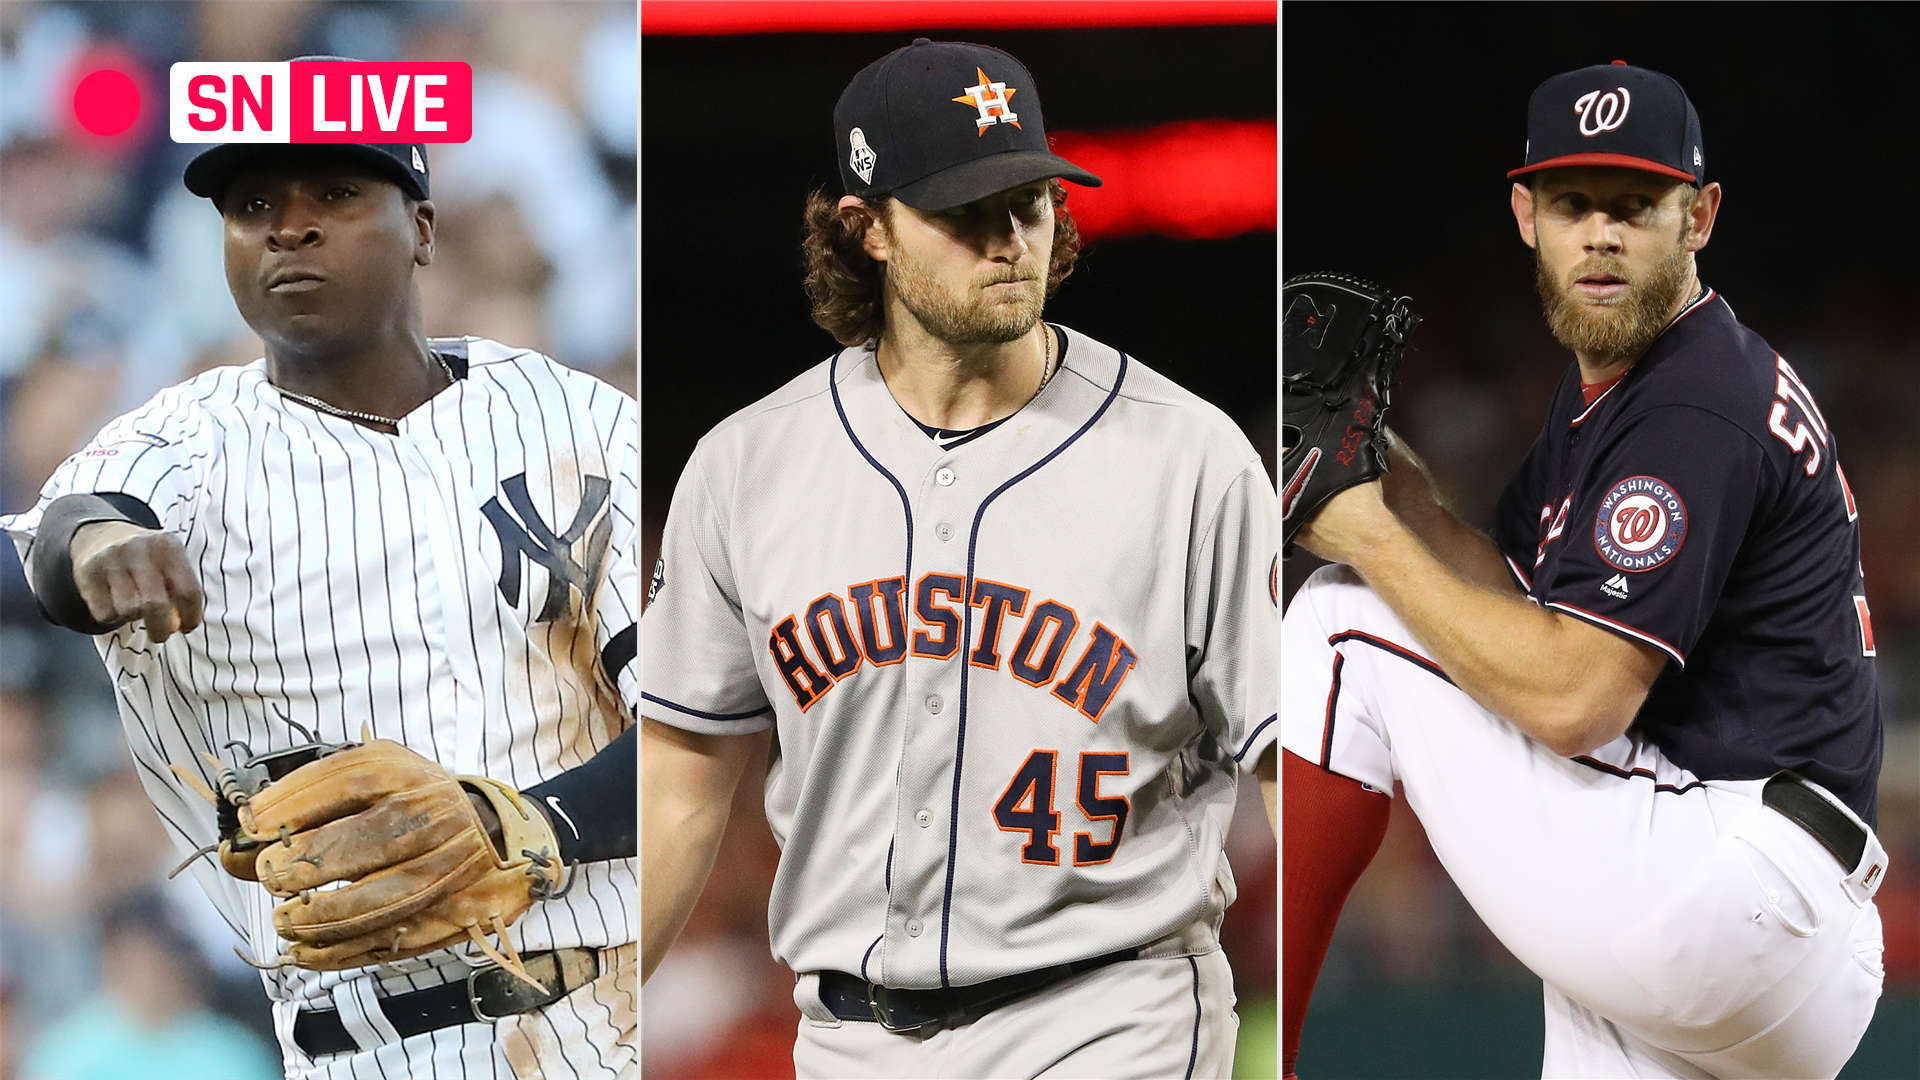 2020 Mlb Free Agents List.Mlb Winter Meetings Tracker 2019 Full List Of Signings